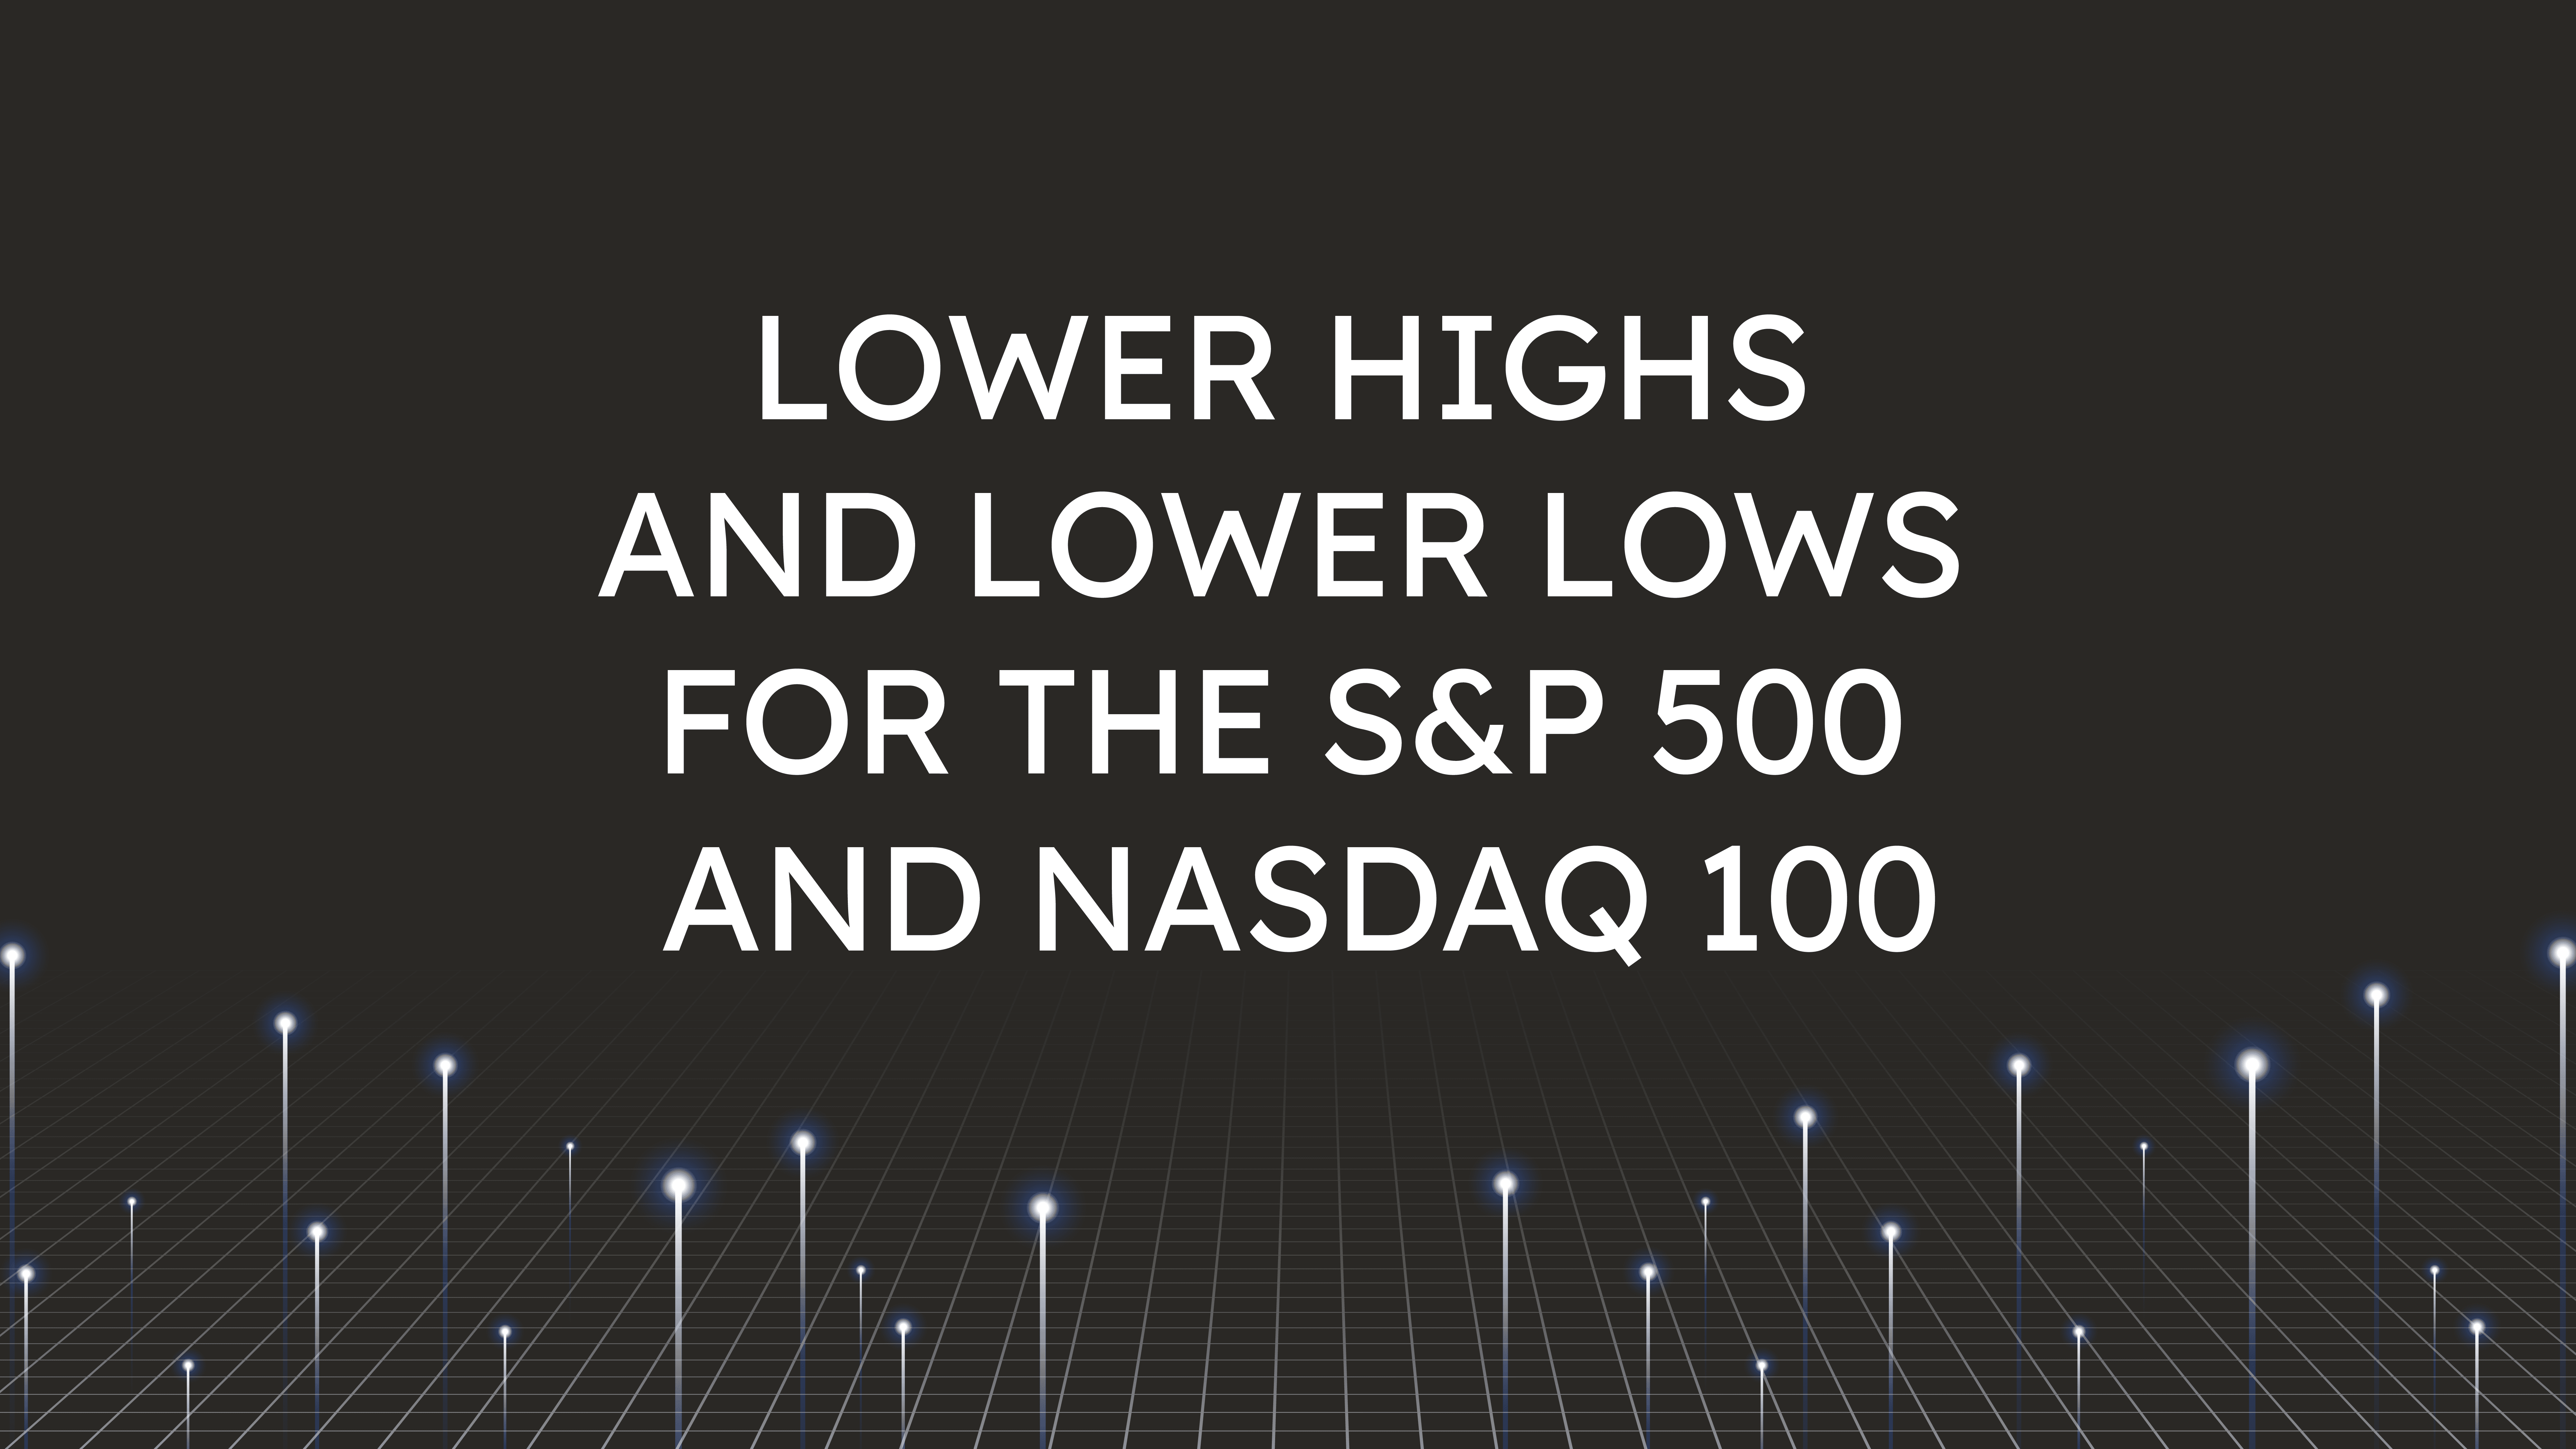 Lower Highs and Lower Lows  for the S&P 500 and NASDAQ 100